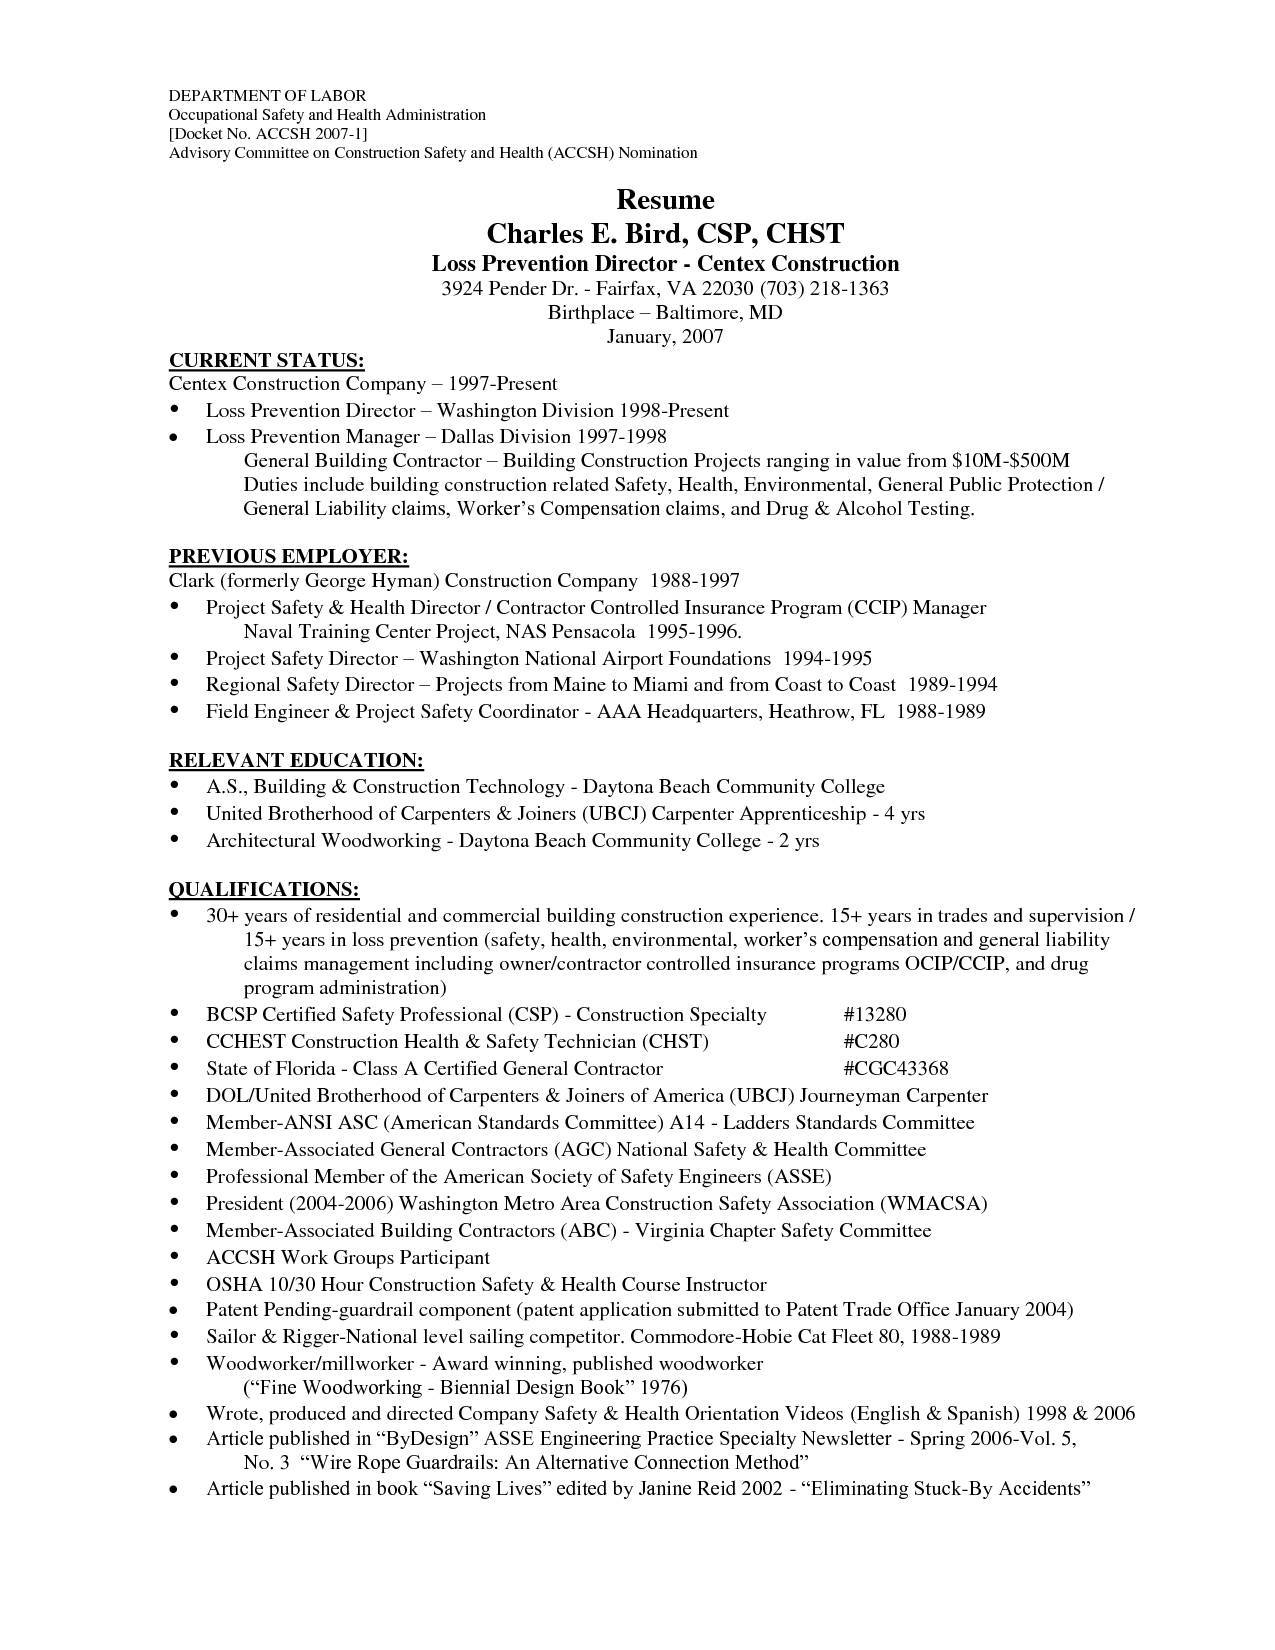 Sample Laborer Resume Templates